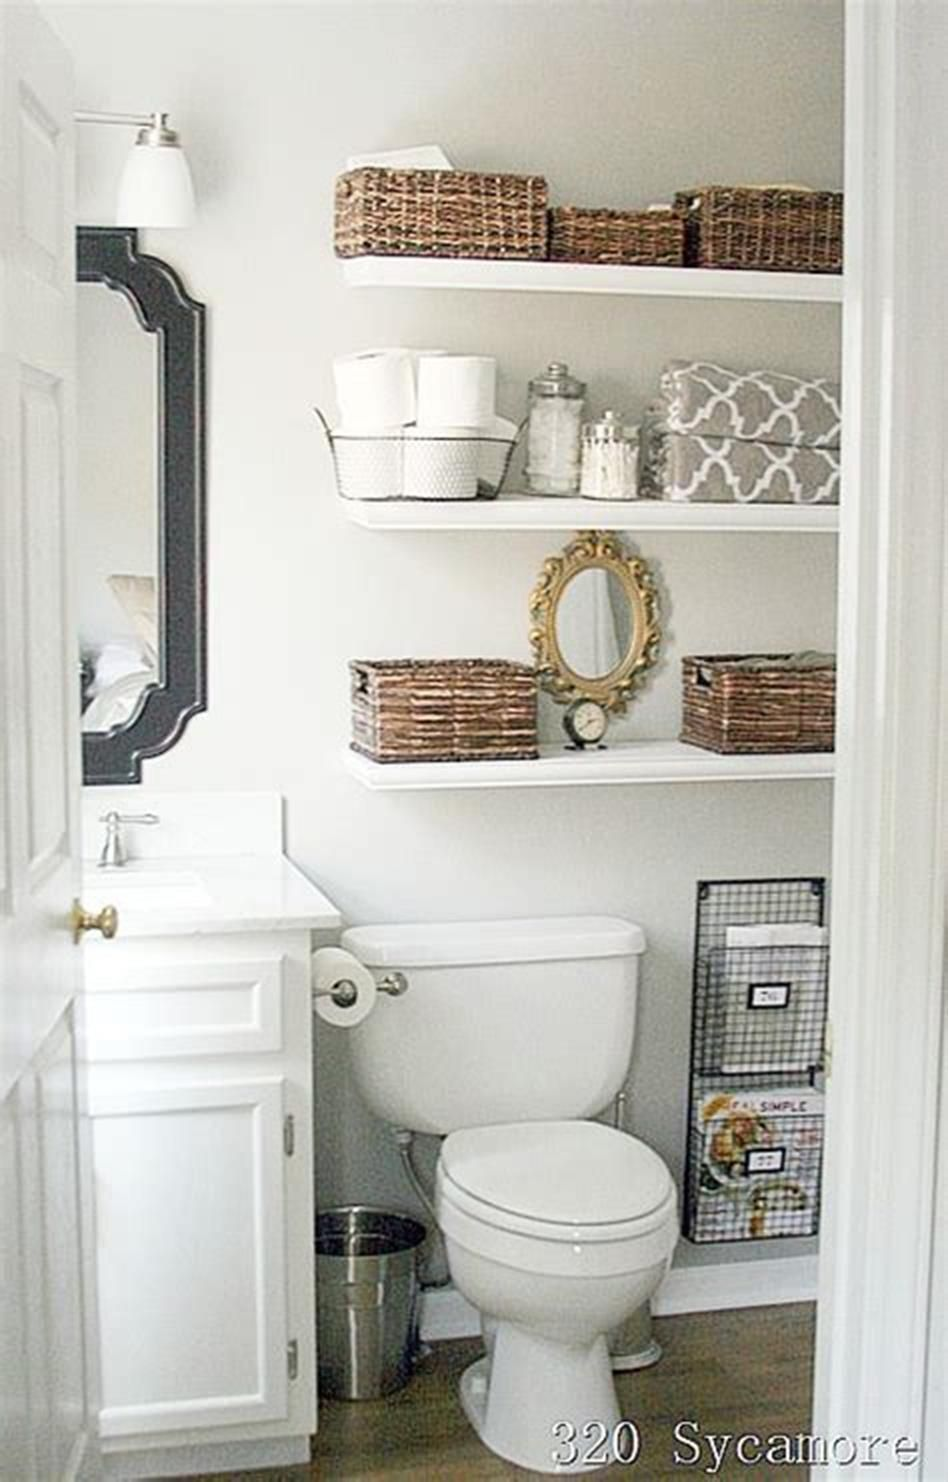 41 Adorable Bathroom Organizers For Small Bathrooms Decorequired Bathroom Cabinets Over Toilet Diy Bathroom Design Bathroom Organization Diy